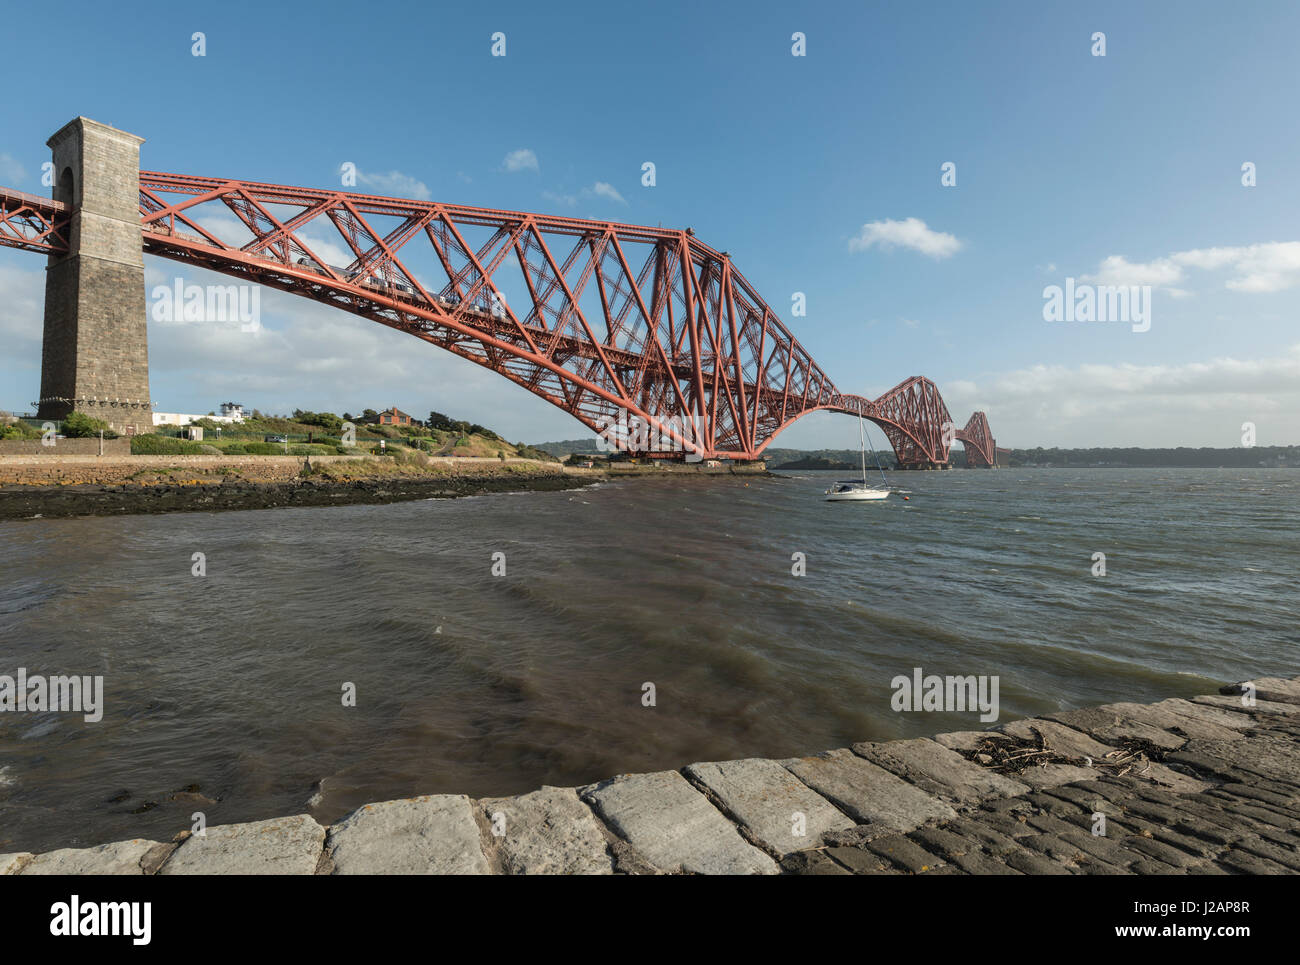 Forth bridge looking south, North Queensferry, Scotland, United Kingdom Stock Photo